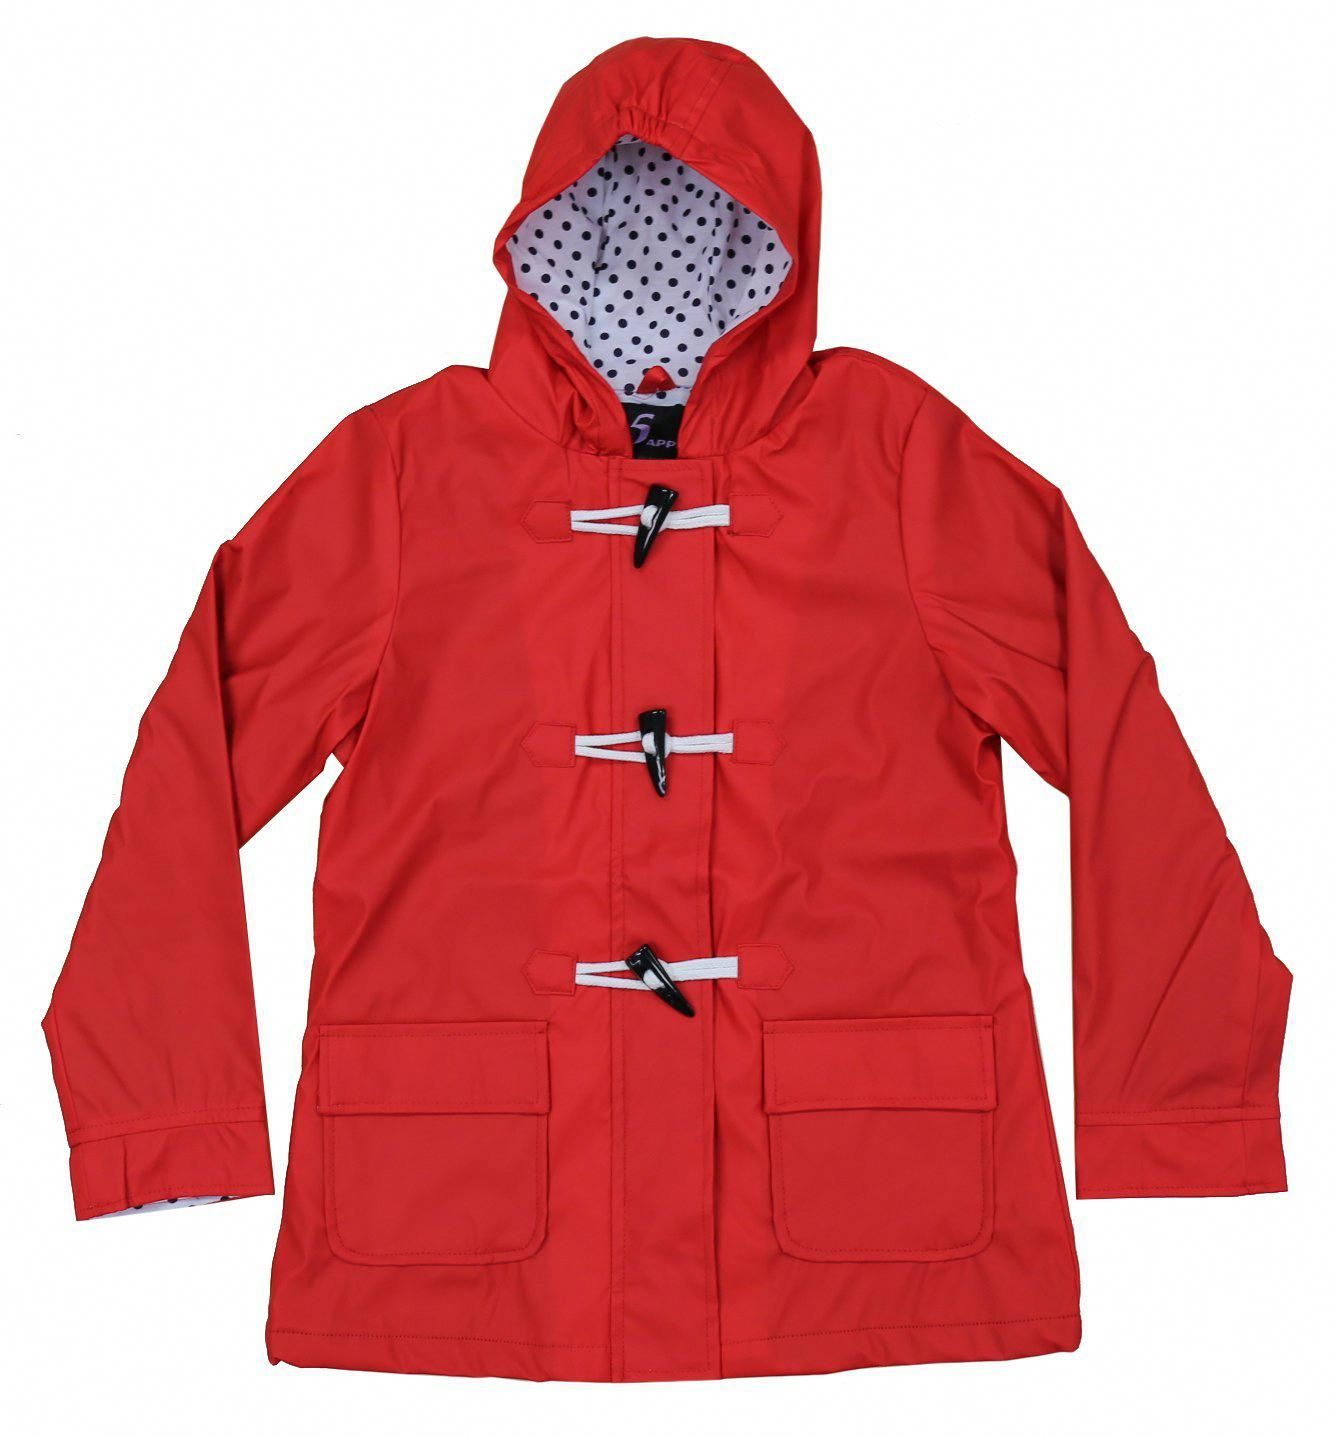 Apparel no. 5 girls' hooded fully lined toggle packable